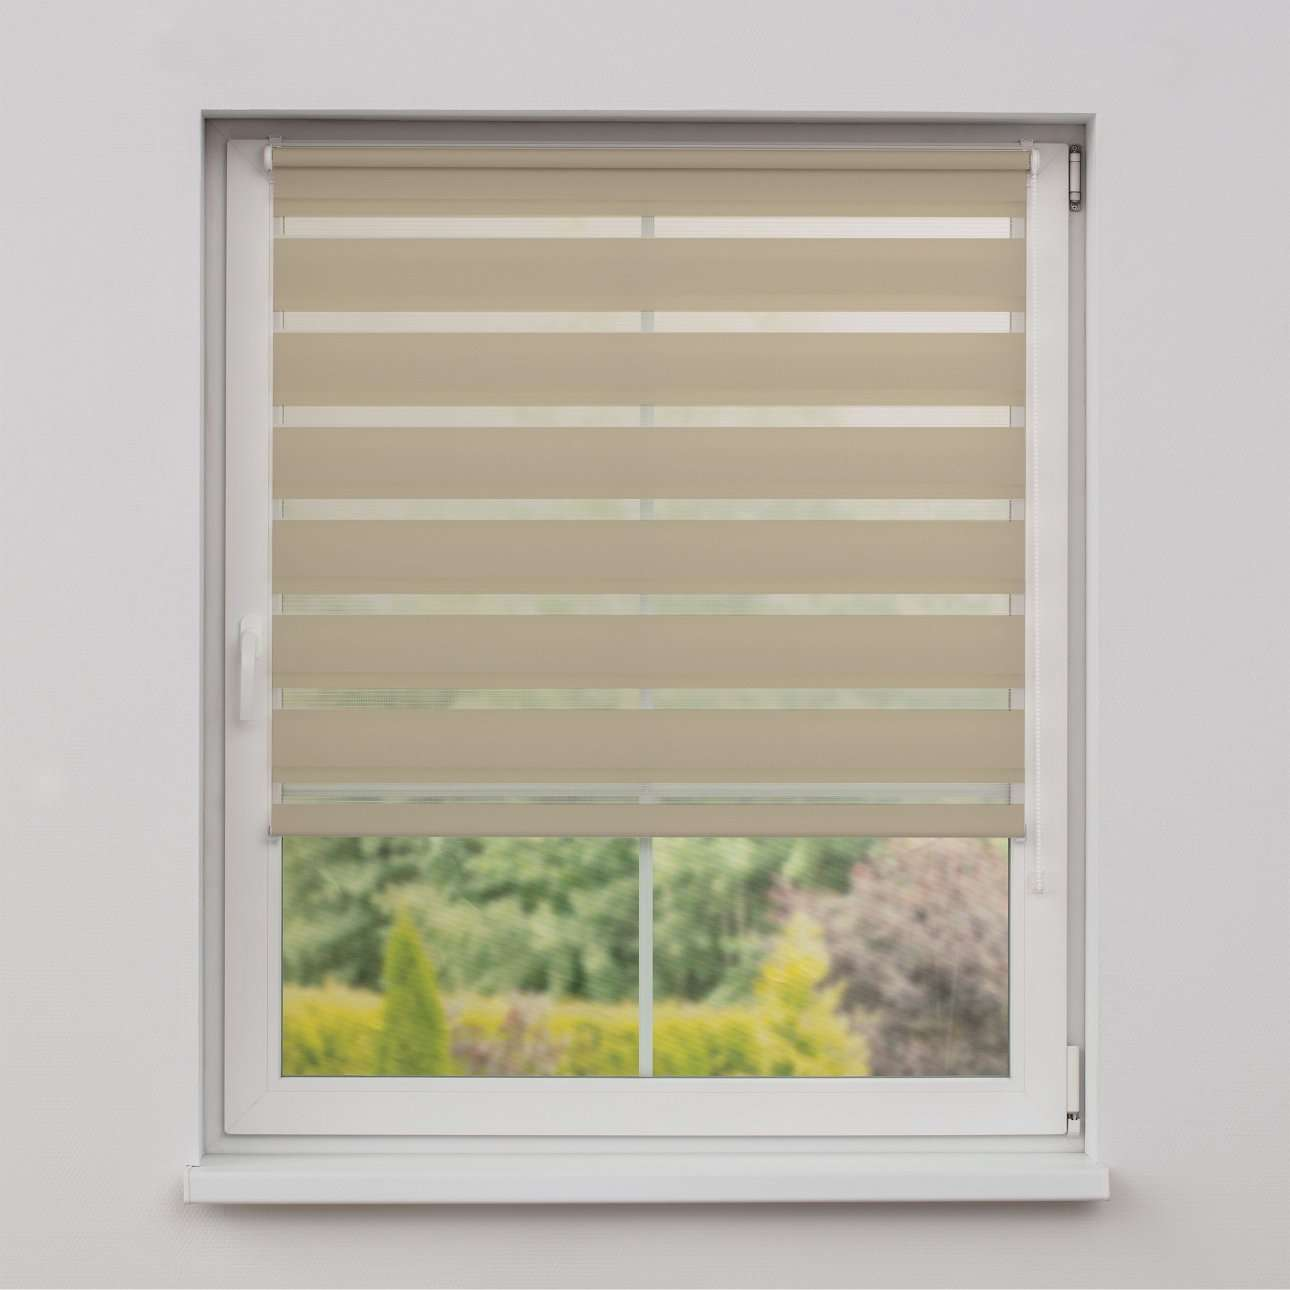 Mini Day & Night blind in collection Roller blinds Day & Night (Venetian blind), fabric: 0102